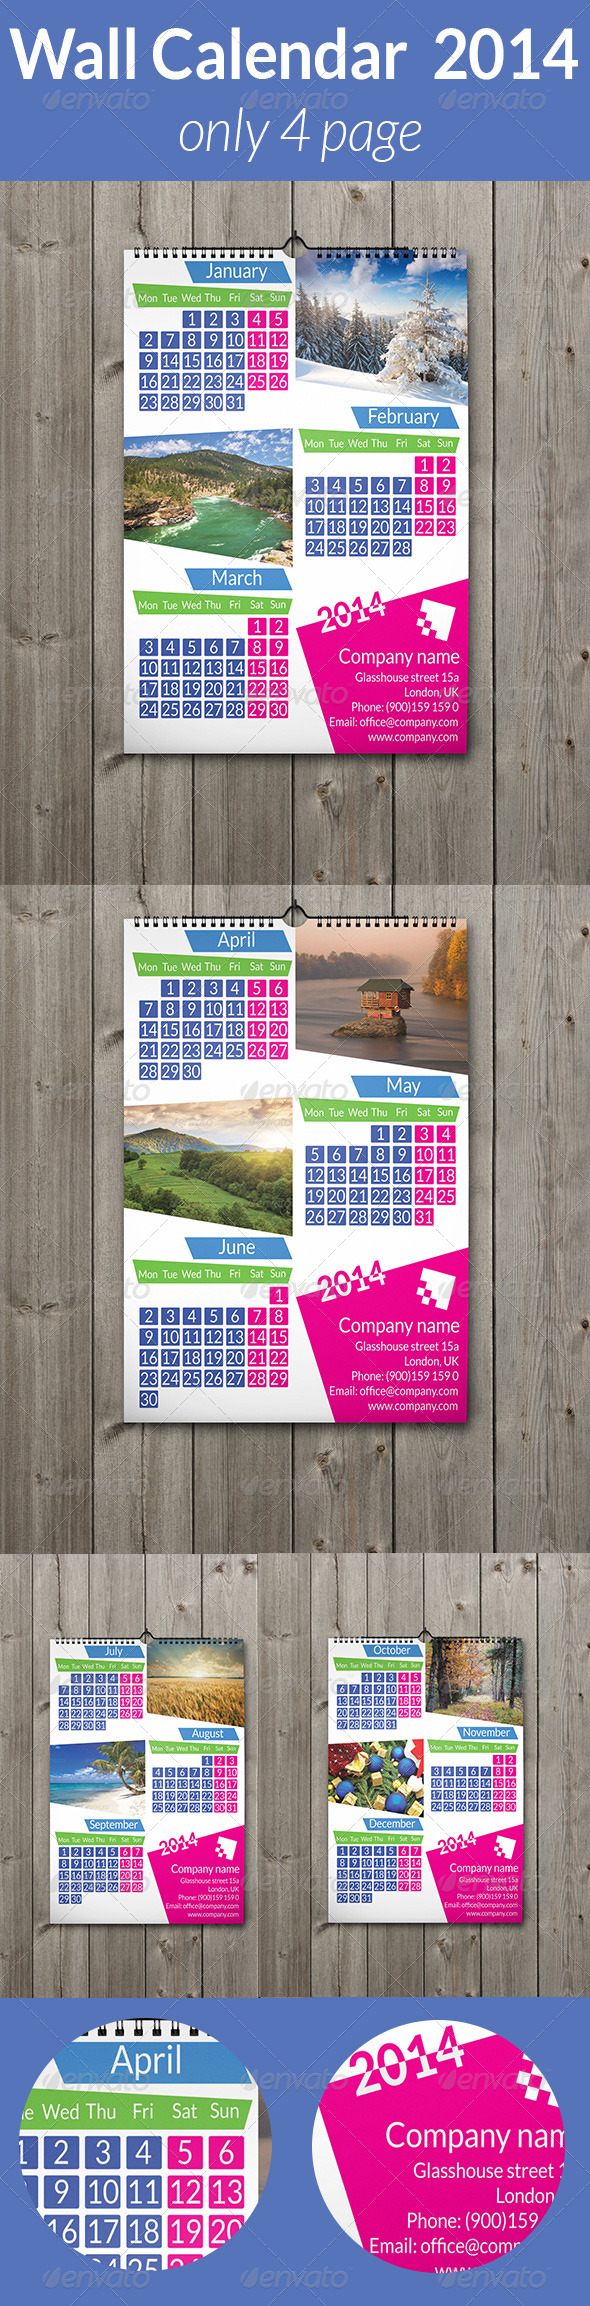 Wall Calendar  2014 Only 4 Page